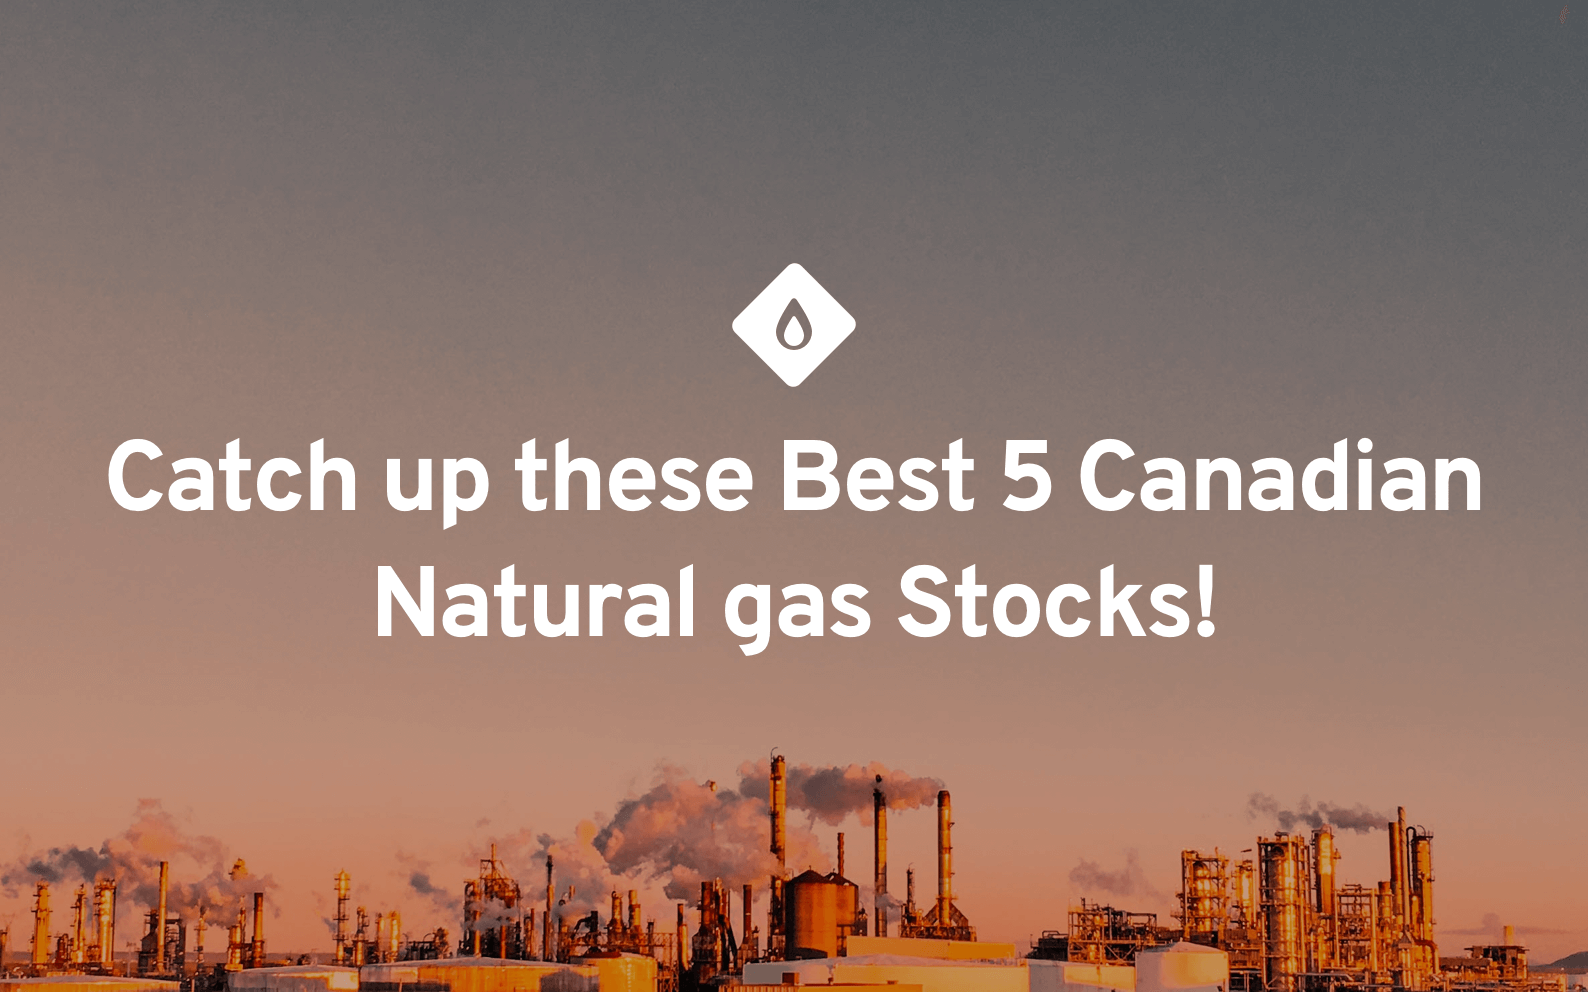 Catch Up on these Best 5 Canadian Natural Gas Stocks